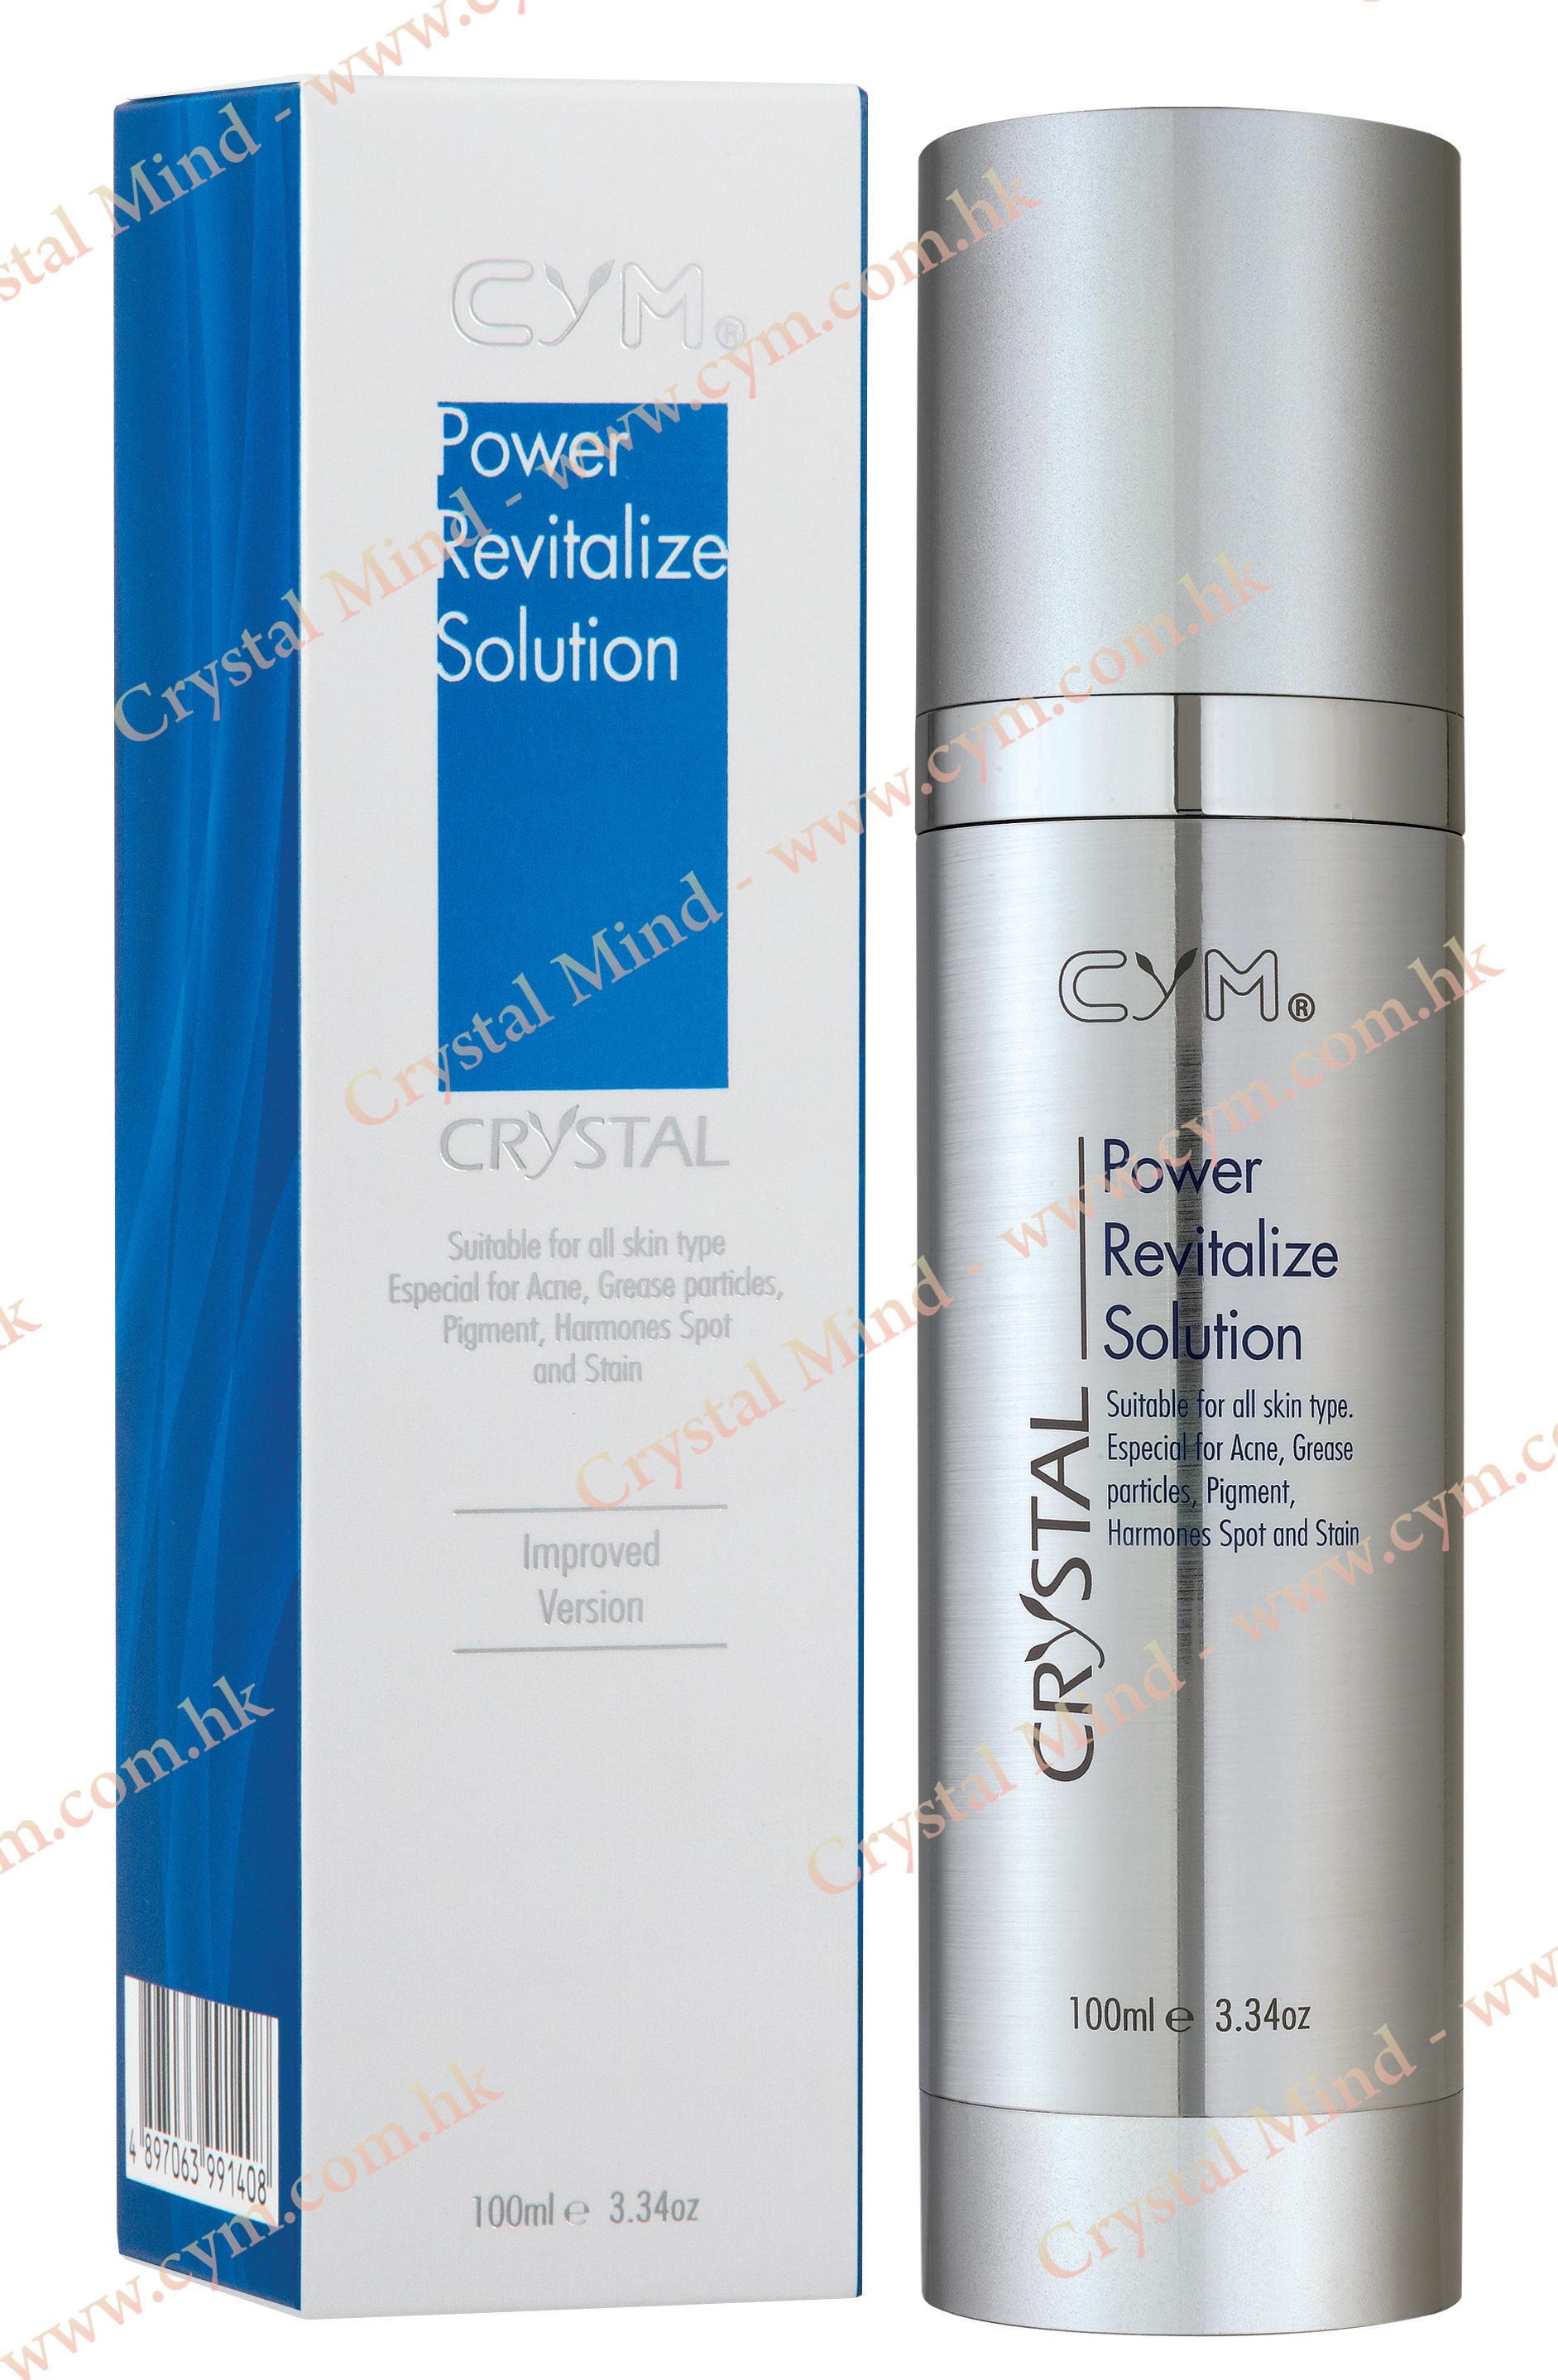 增白催化液 - 改良版  Power Revitalize Solution - 100 ML - 888.01-AD